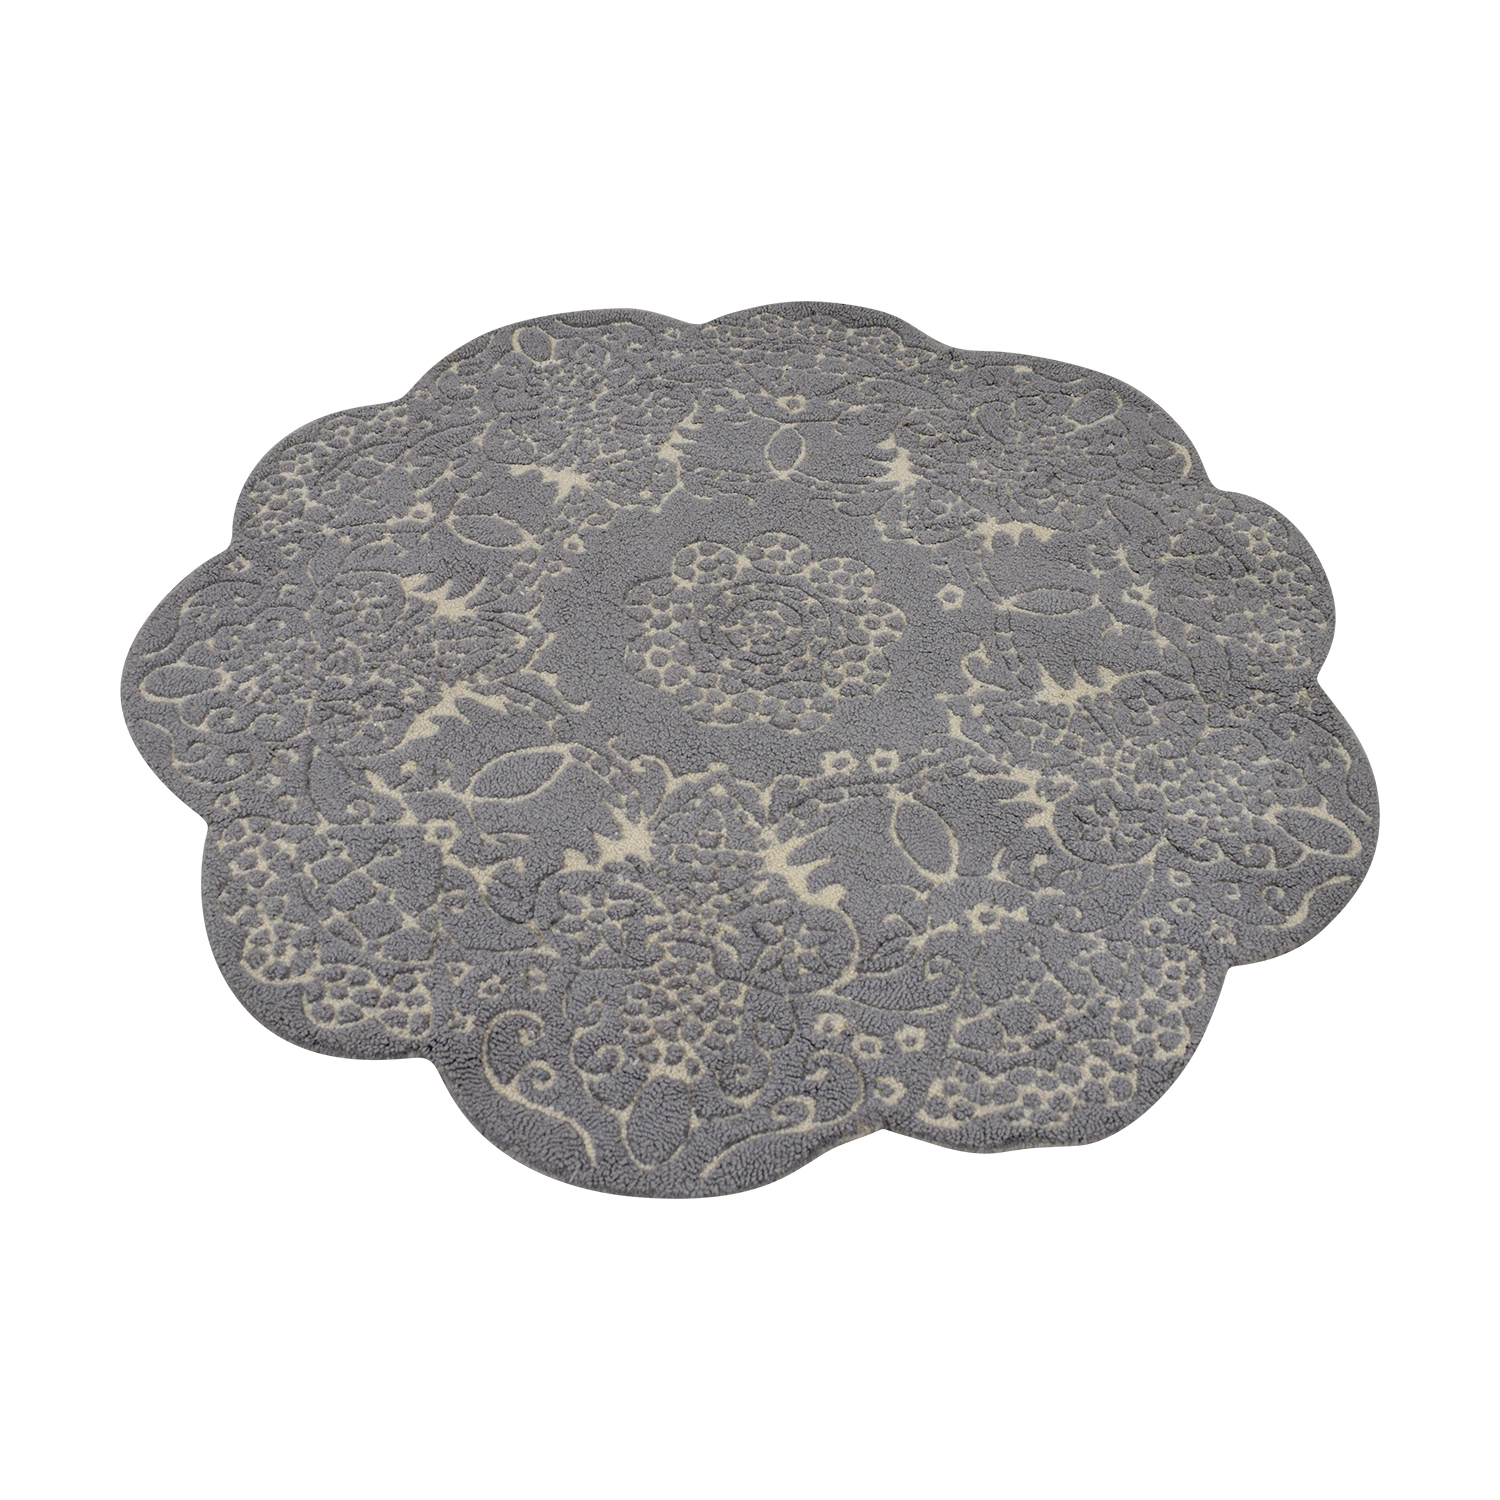 Anthropologie Anthropologie Doily Round Grey Rug dimensions